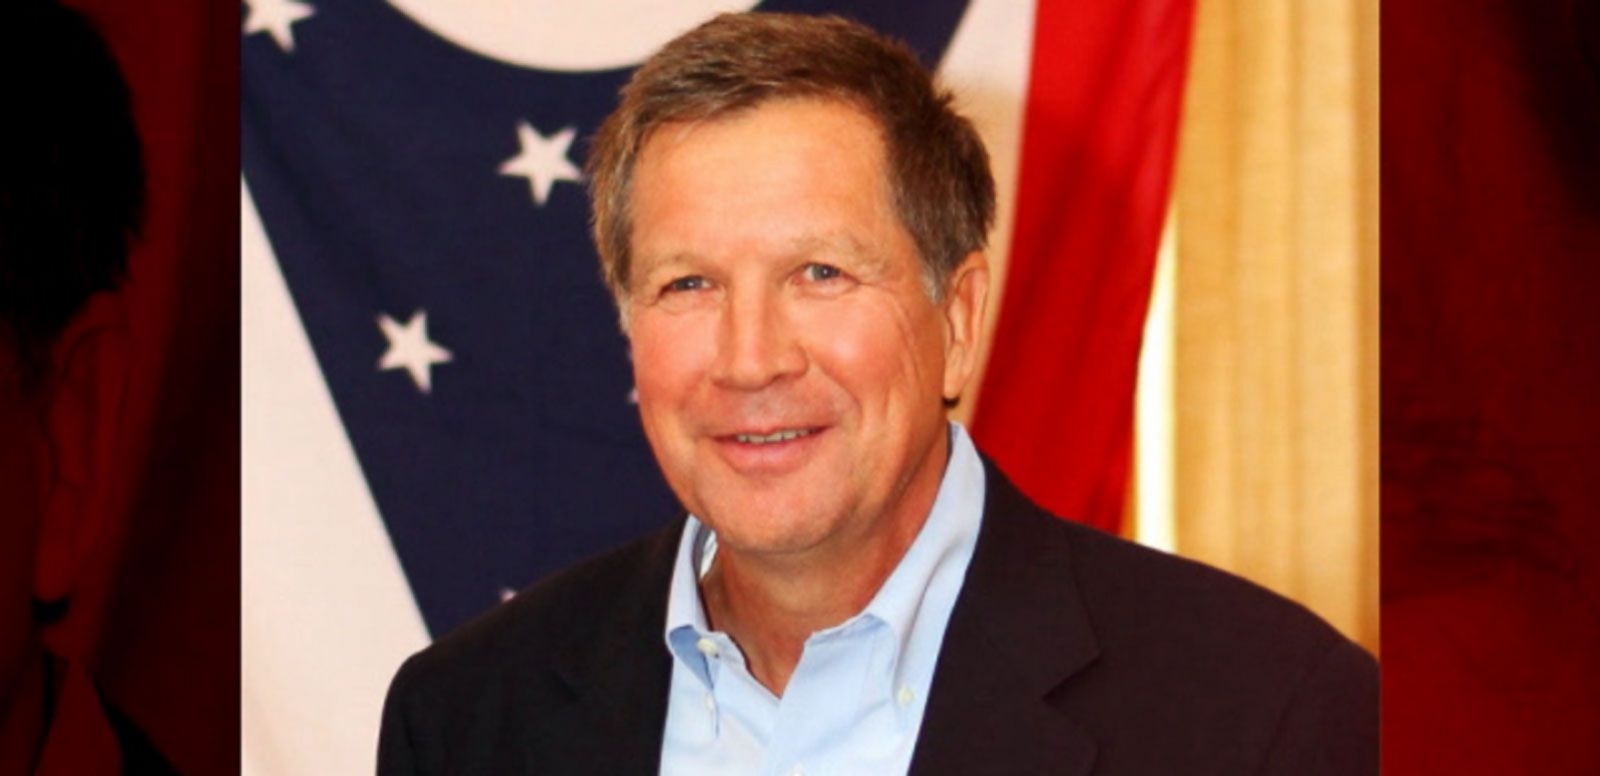 VIDEO: John Kasich In A Minute